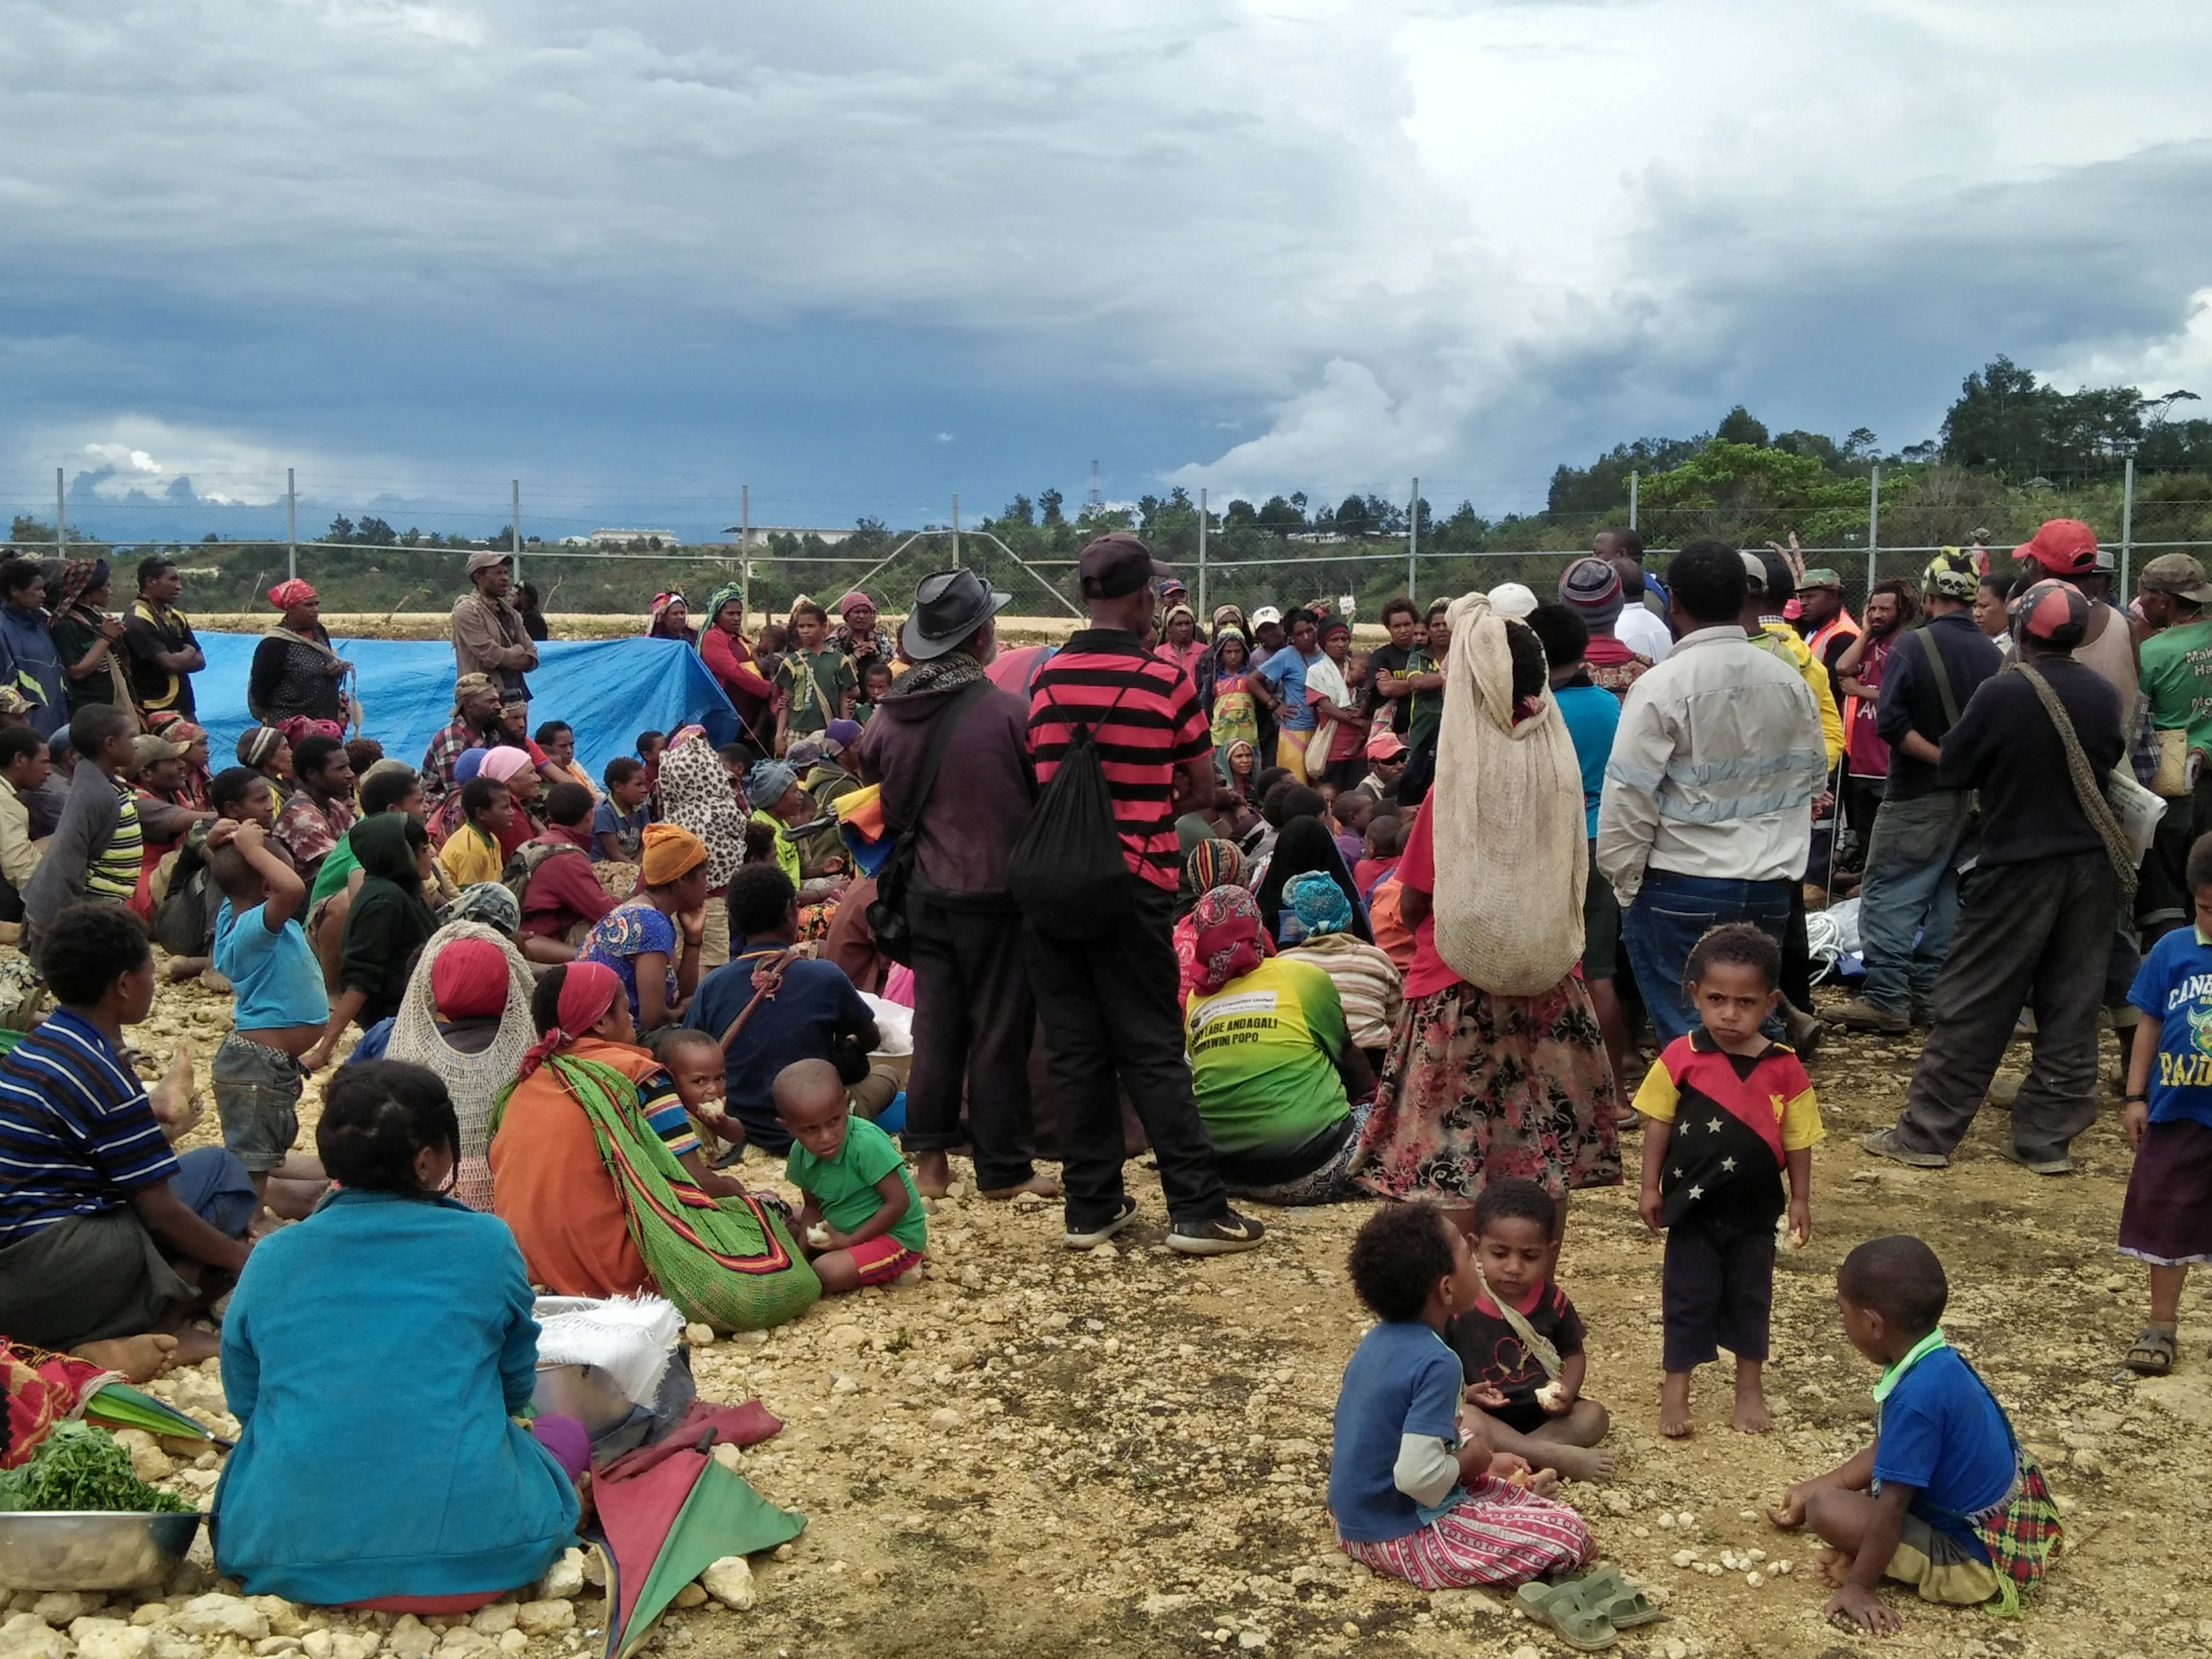 People displaced by an earthquake gather at a relief centre in the central highlands of Papua New Guinea March 1, 2018. Milton Kwaipo/Caritas Australia/Handout via REUTERS